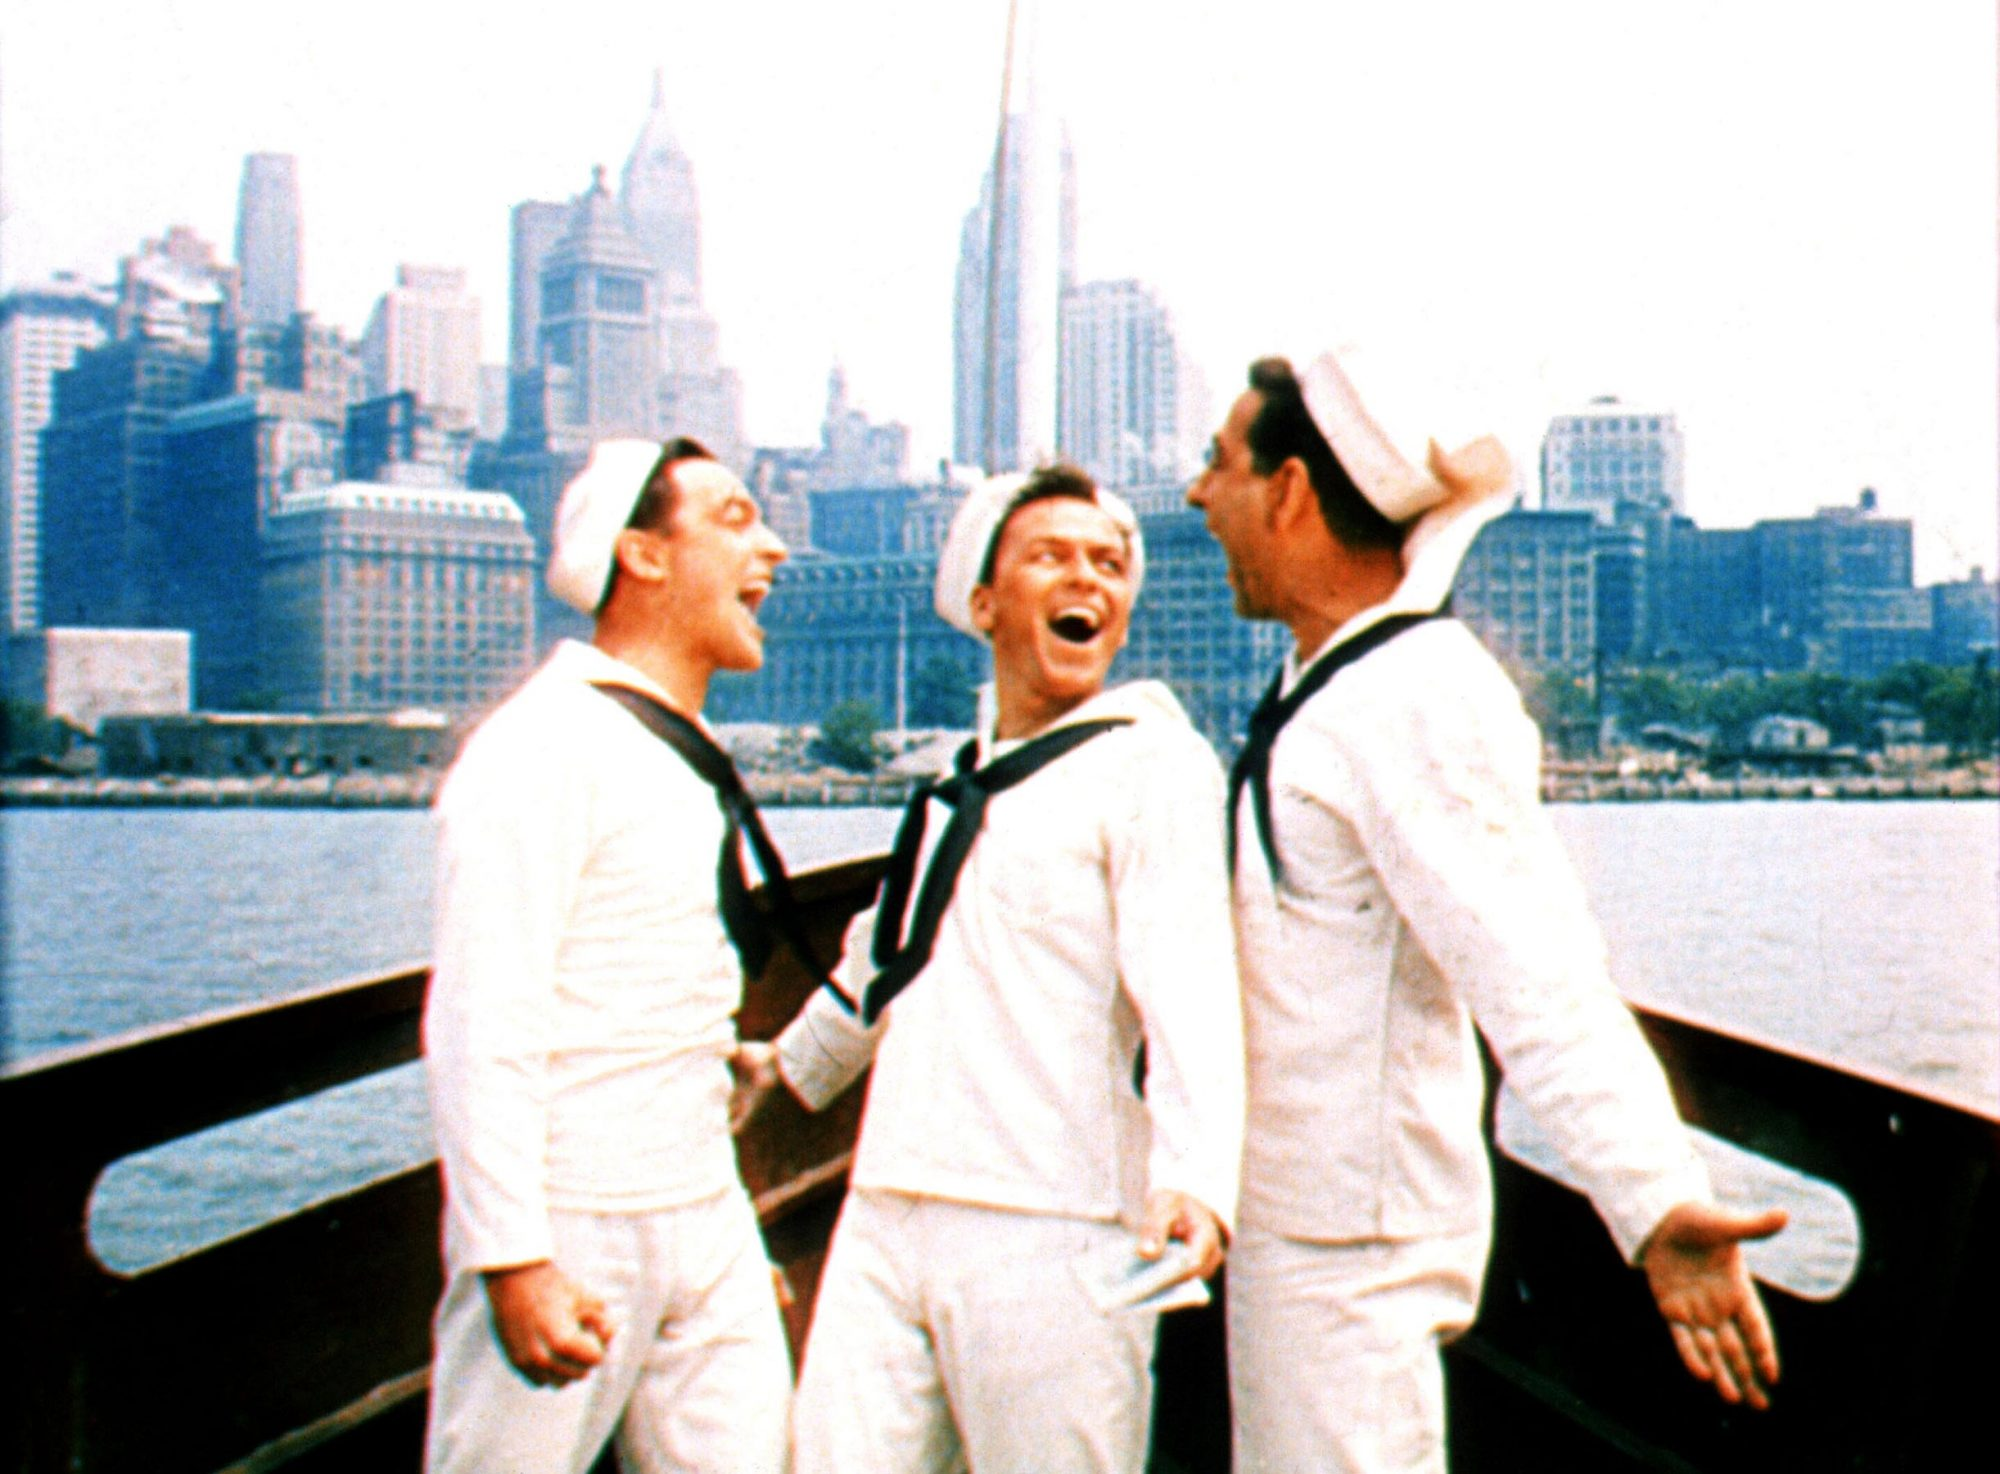 ON THE TOWN, Gene Kelly, Frank Sinatra, Jules Munshin, 1949